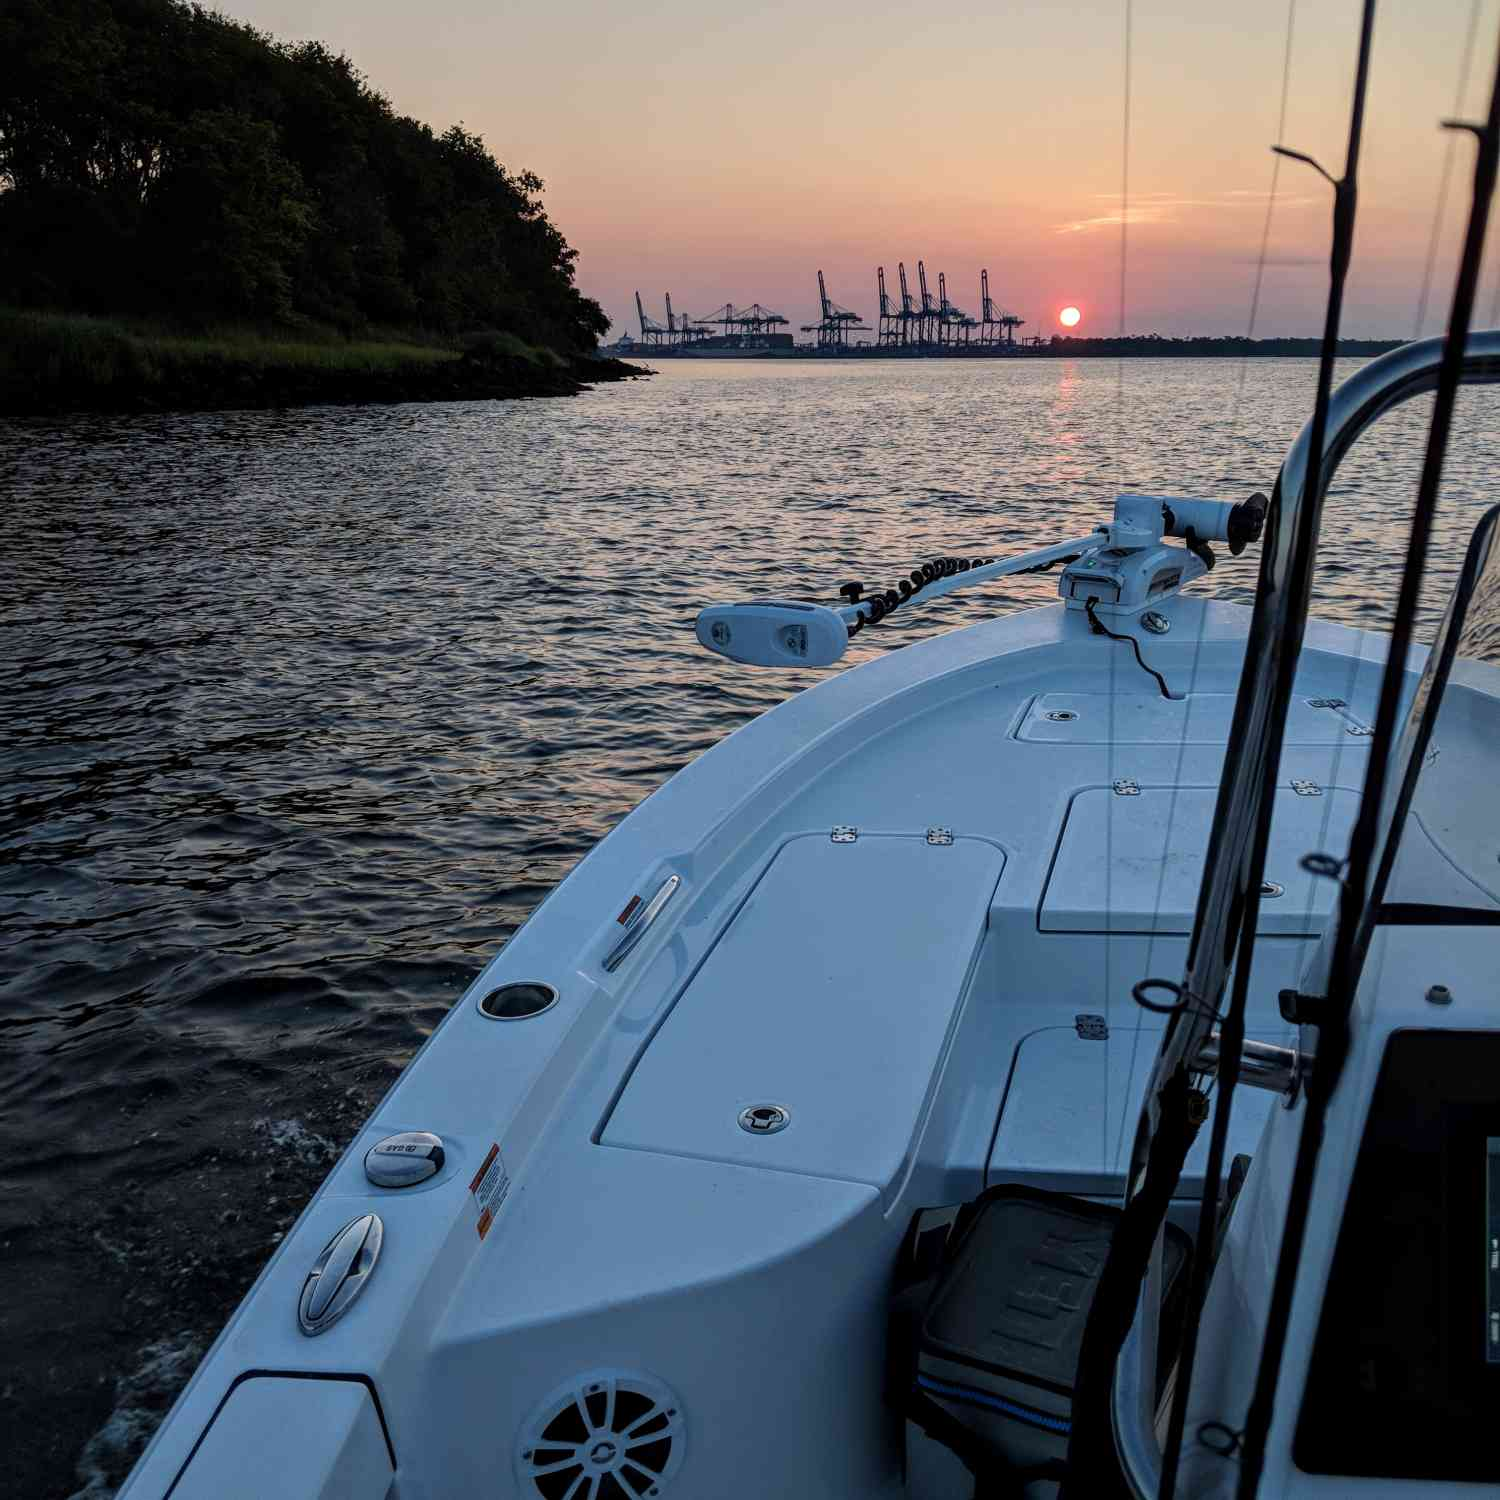 Title: Top water time - On board their Sportsman Masters 207 Bay Boat - Location: Charleston SC. Participating in the Photo Contest #SportsmanJuly2018